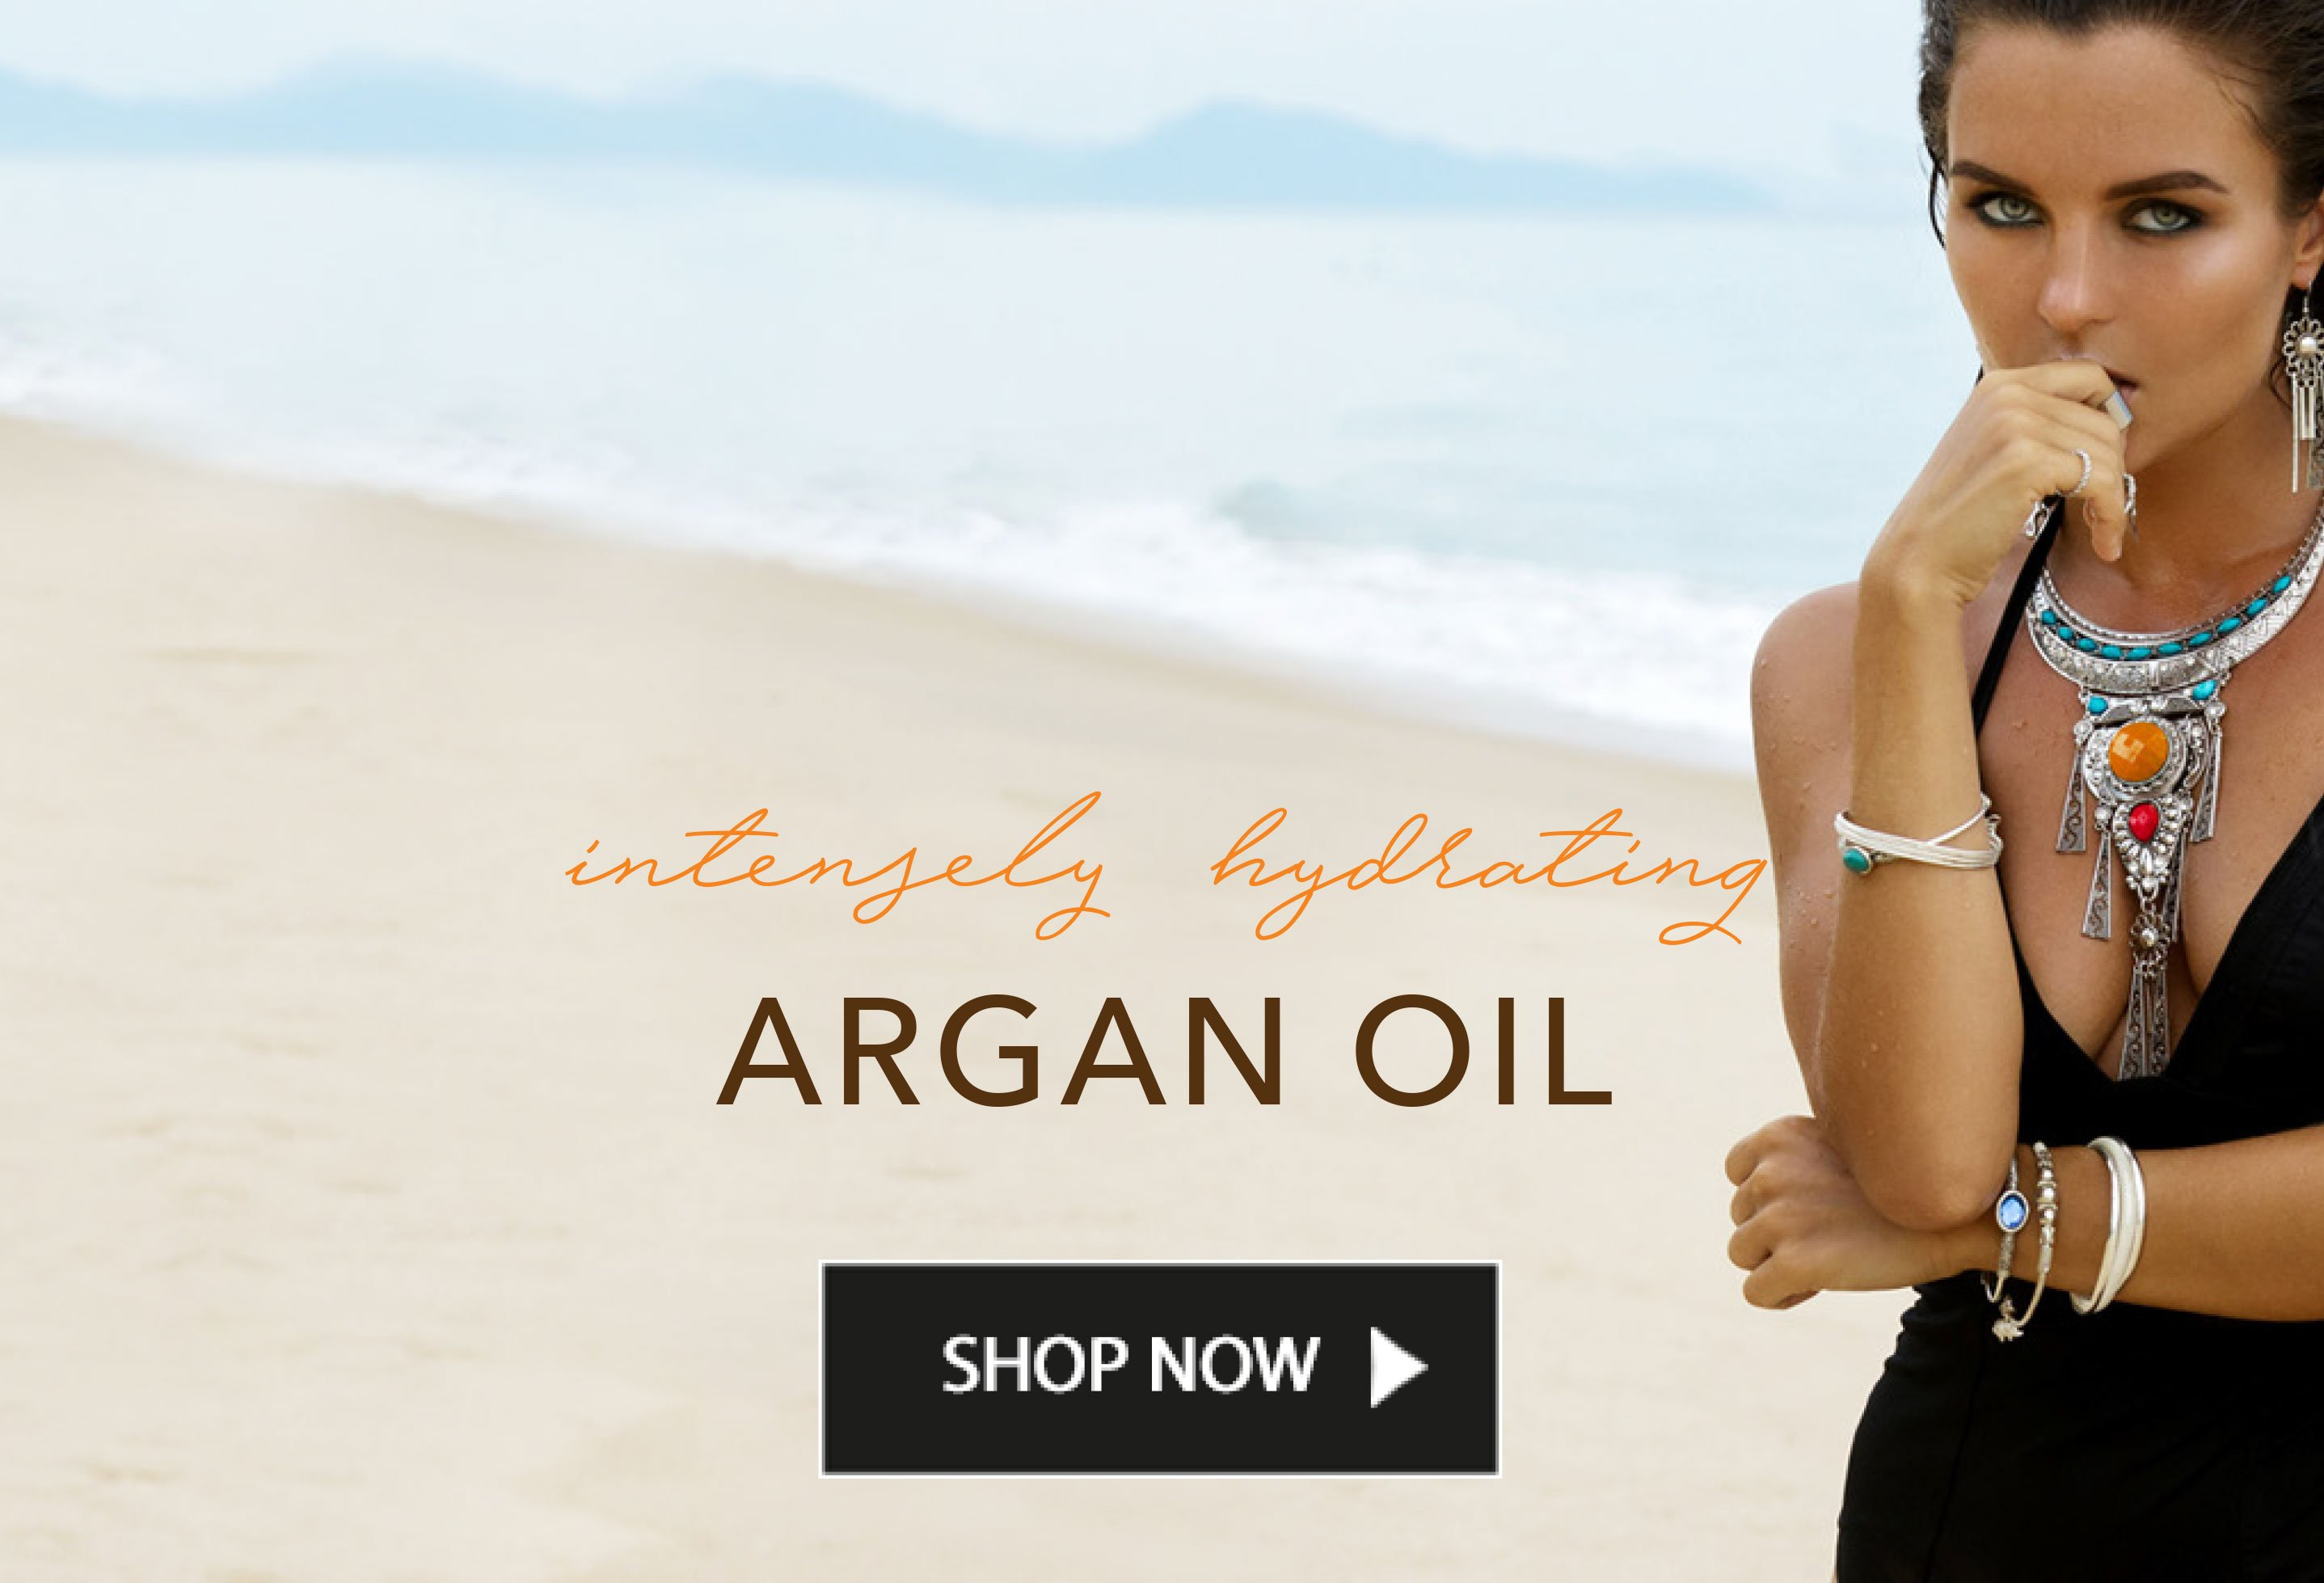 Argan Oil Enriched Tans